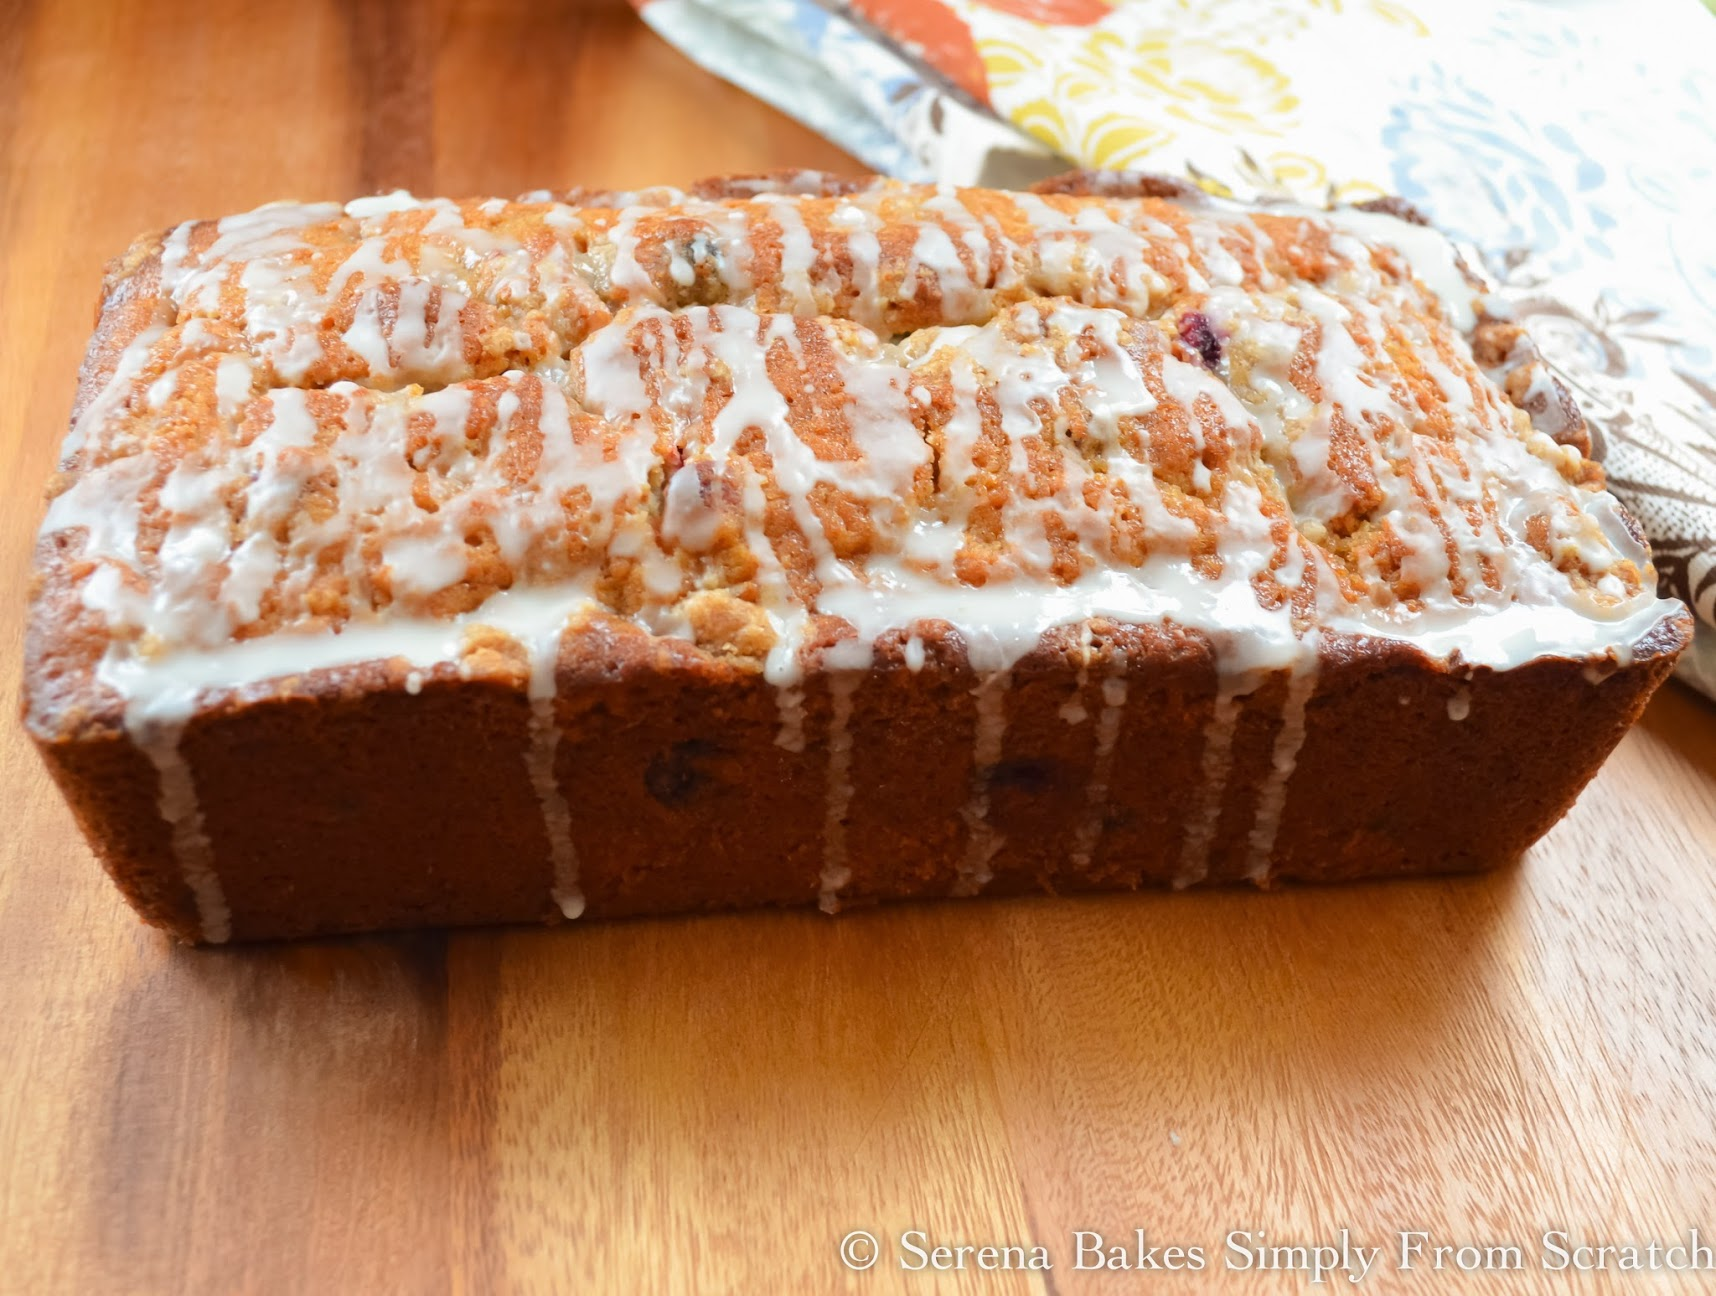 Orange-Cranberry-Bread-With-Orange-Glaze-Drizzle-Orange-Glaze.jpg